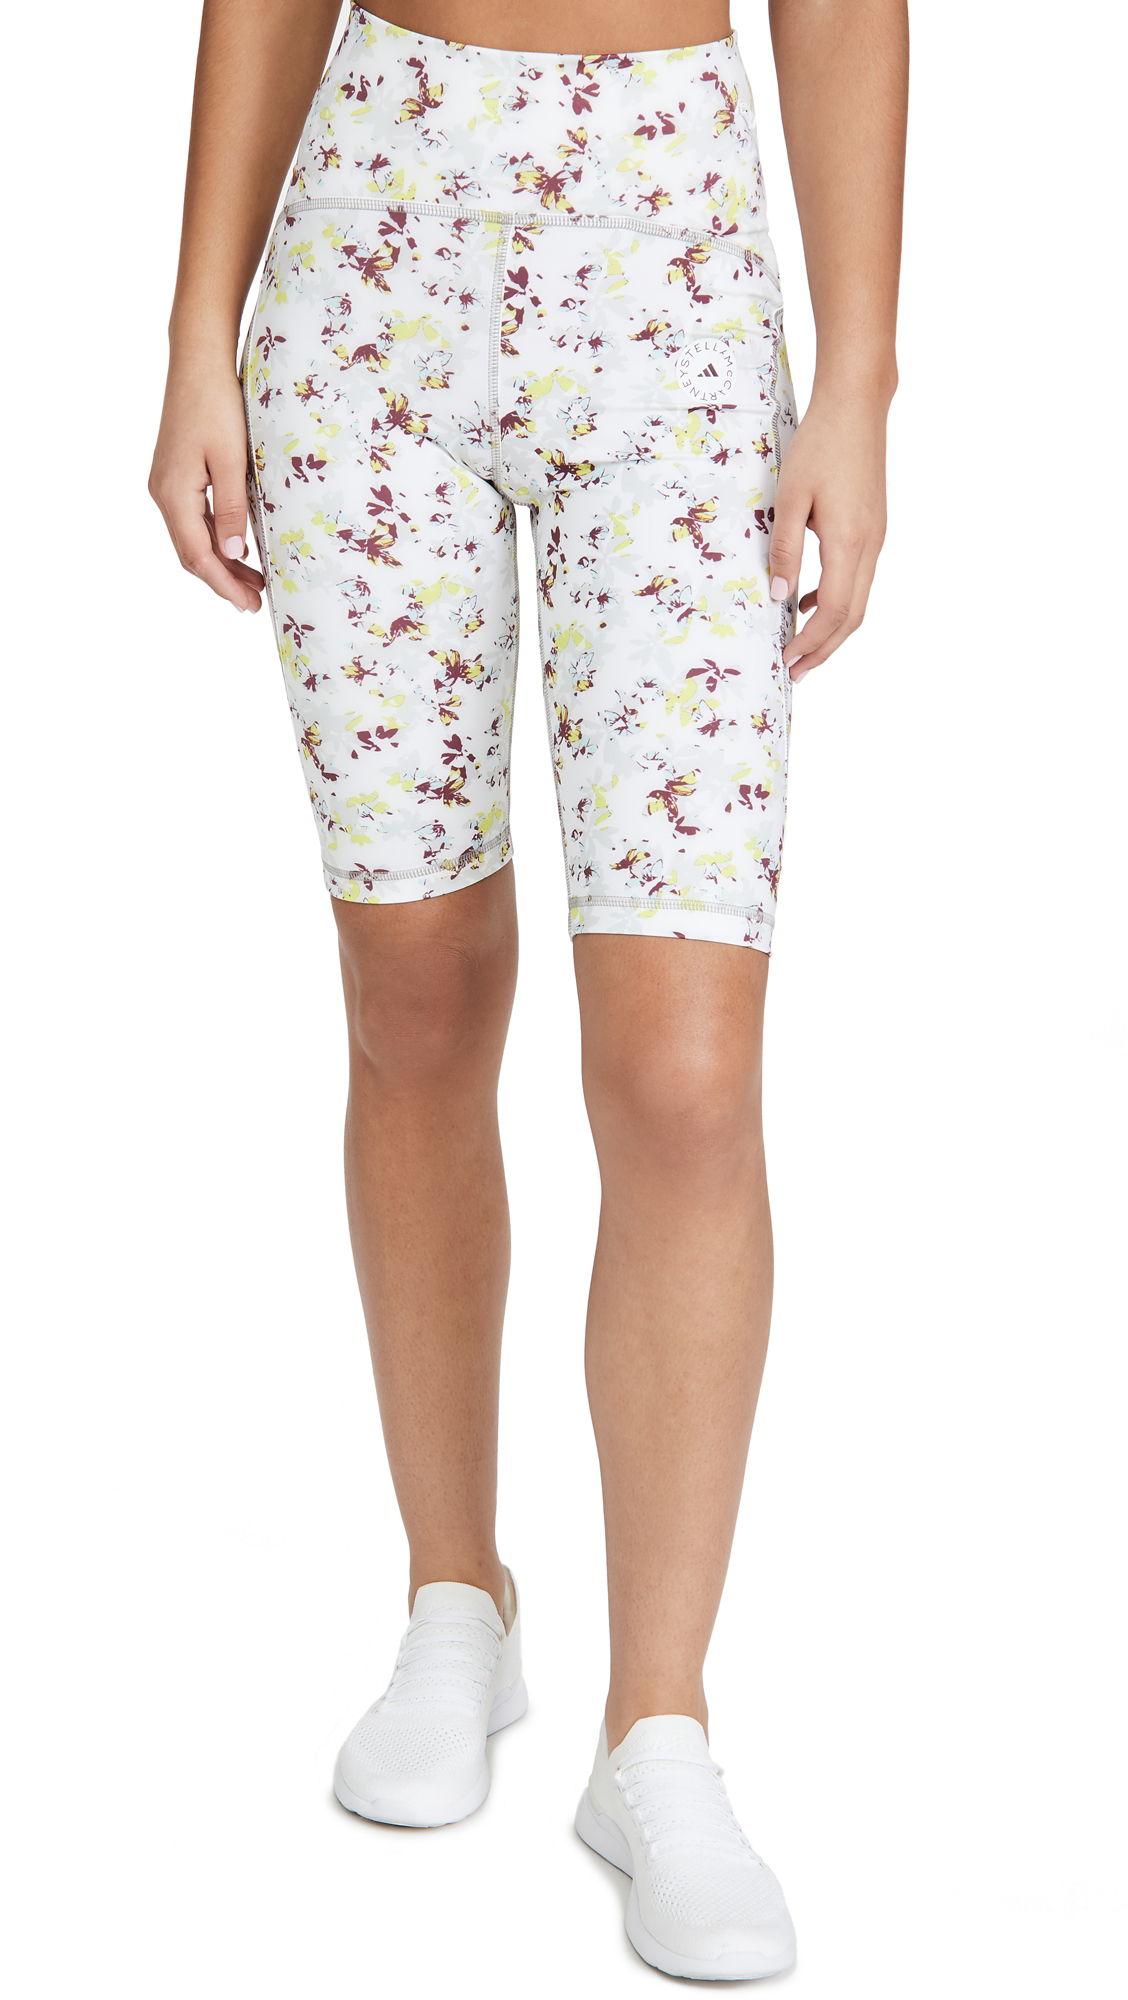 adidas by Stella McCartney True Purpose Cycling Shorts